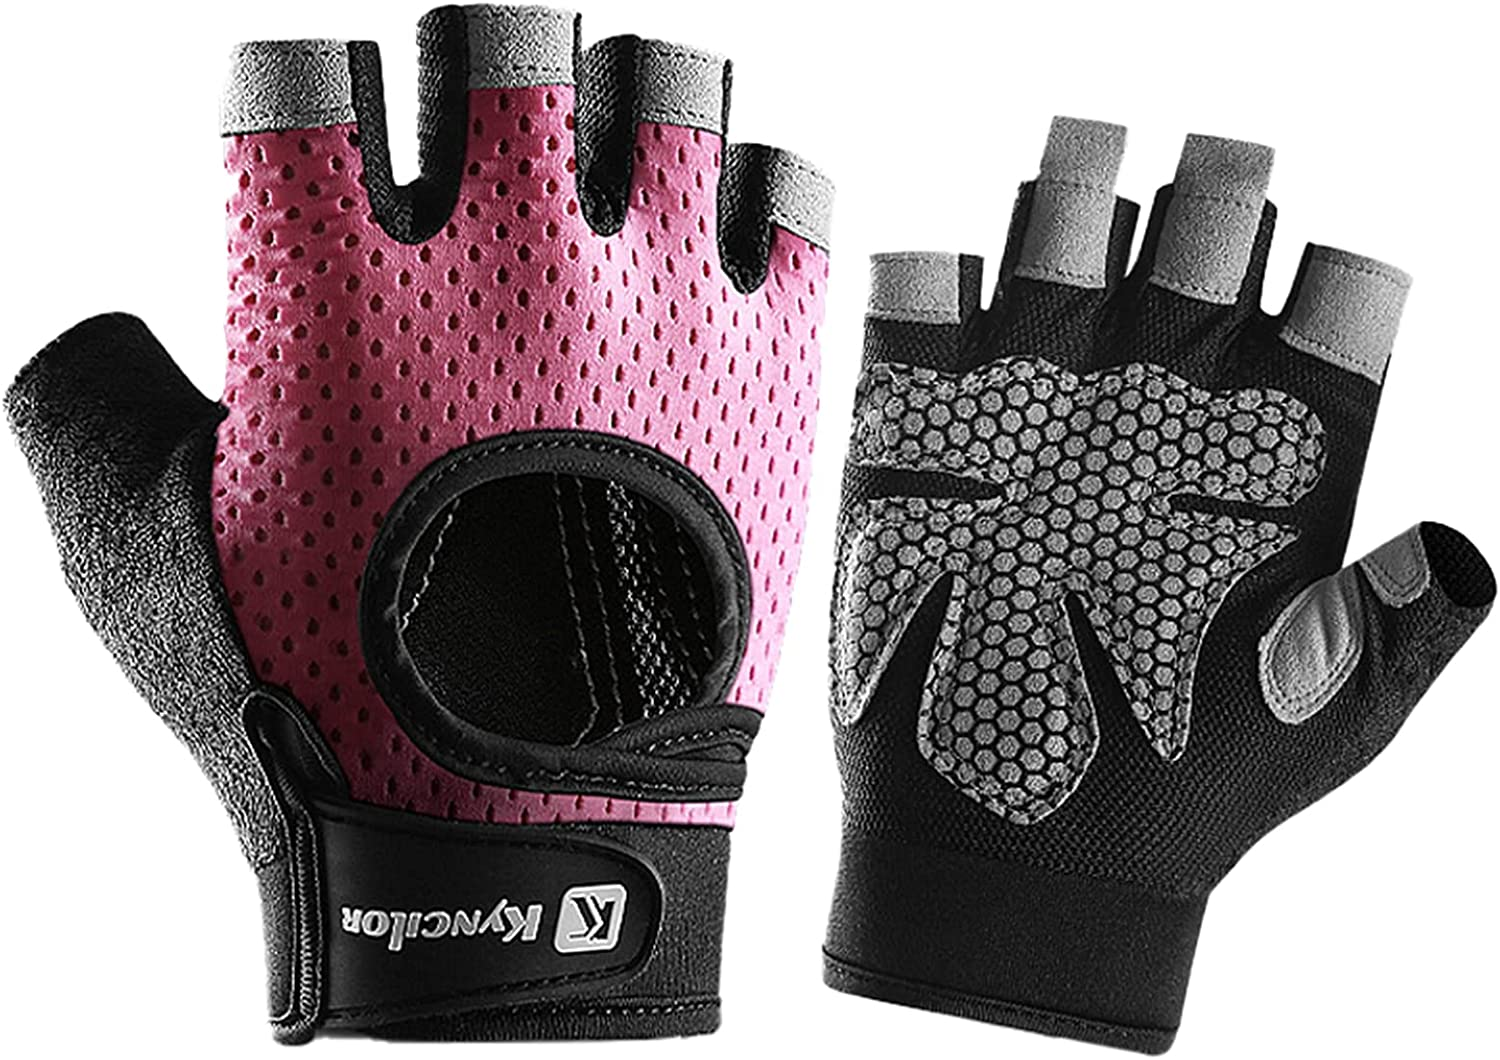 TOLUON Max 57% OFF Cycling Gloves Workout Half Protectio Finger Palm Charlotte Mall